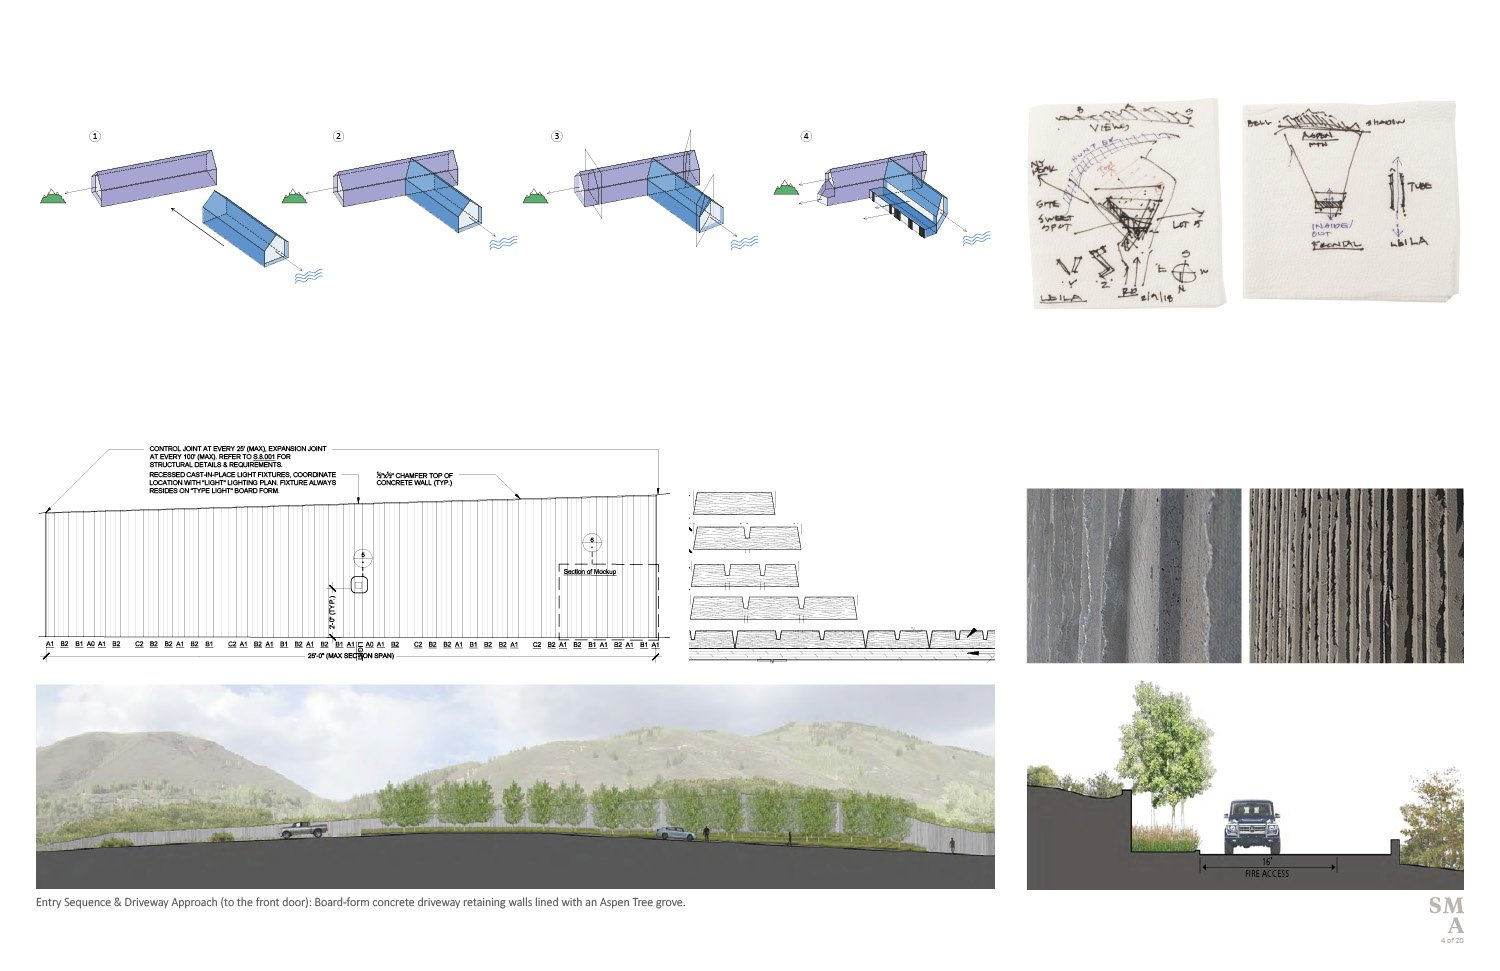 Lot 4 - Conceptual diagrams describing the massing strategies and evolution. Driveway retaining wall materiality and approach sequence to the entry. SMA Design Team & Consultants}